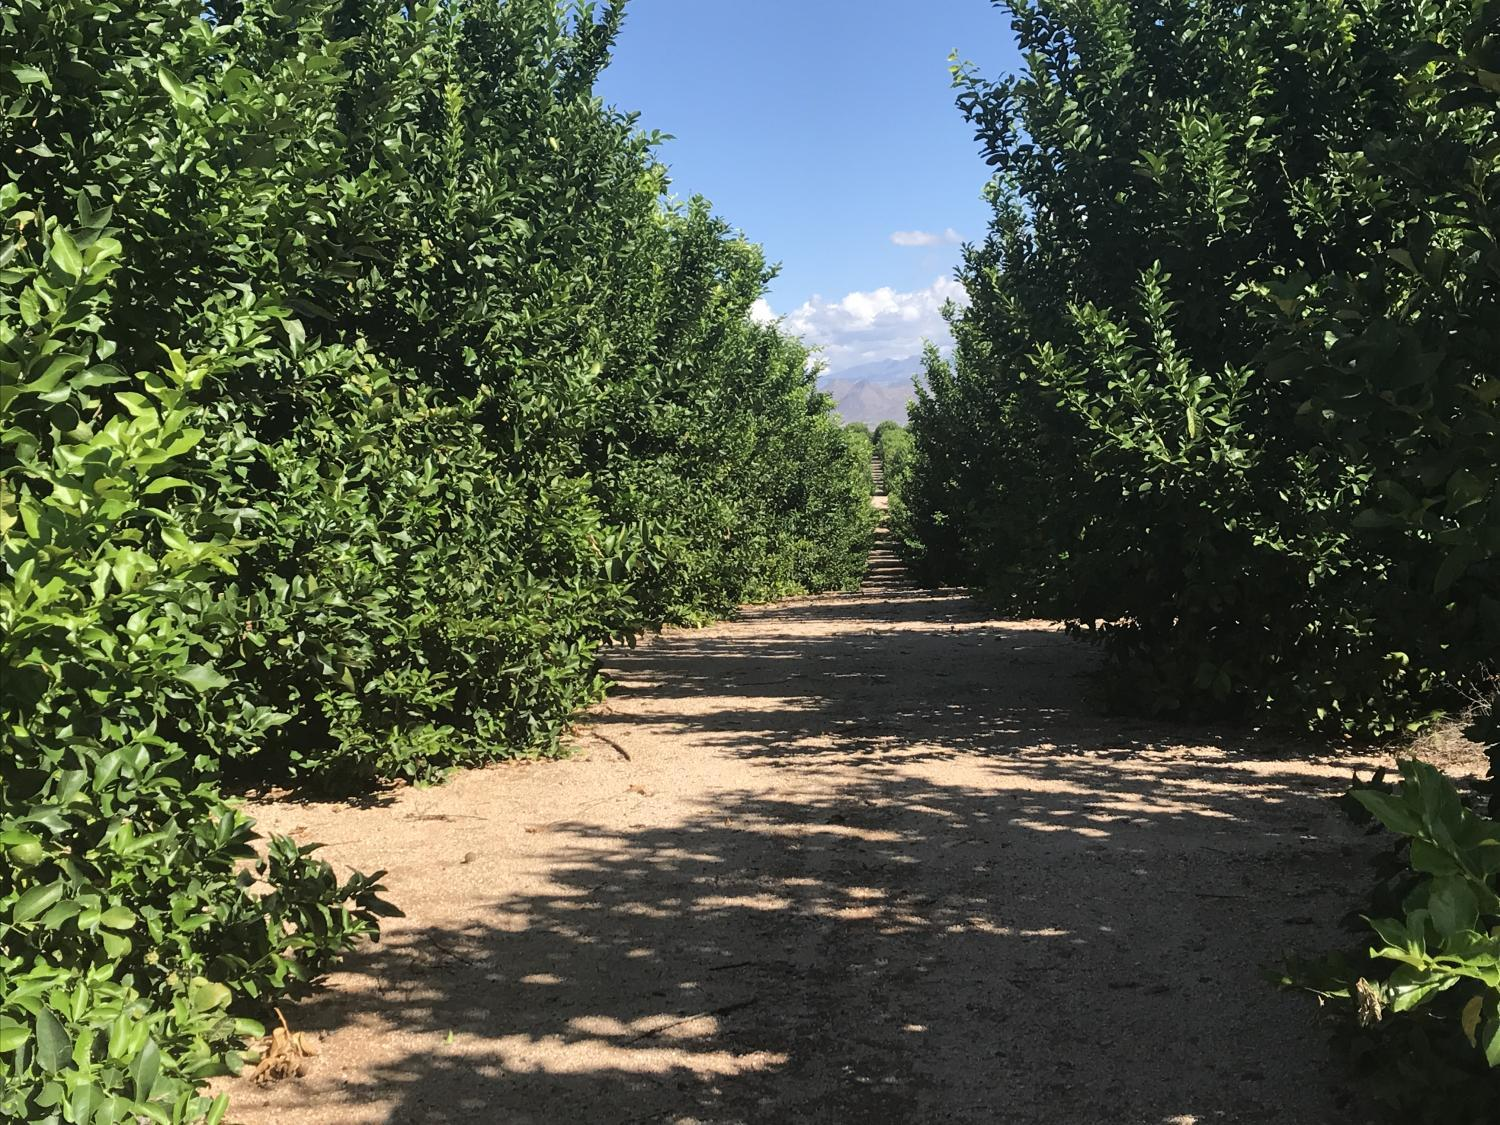 View down rows of lemon trees at the Ft. McDowell Farm.